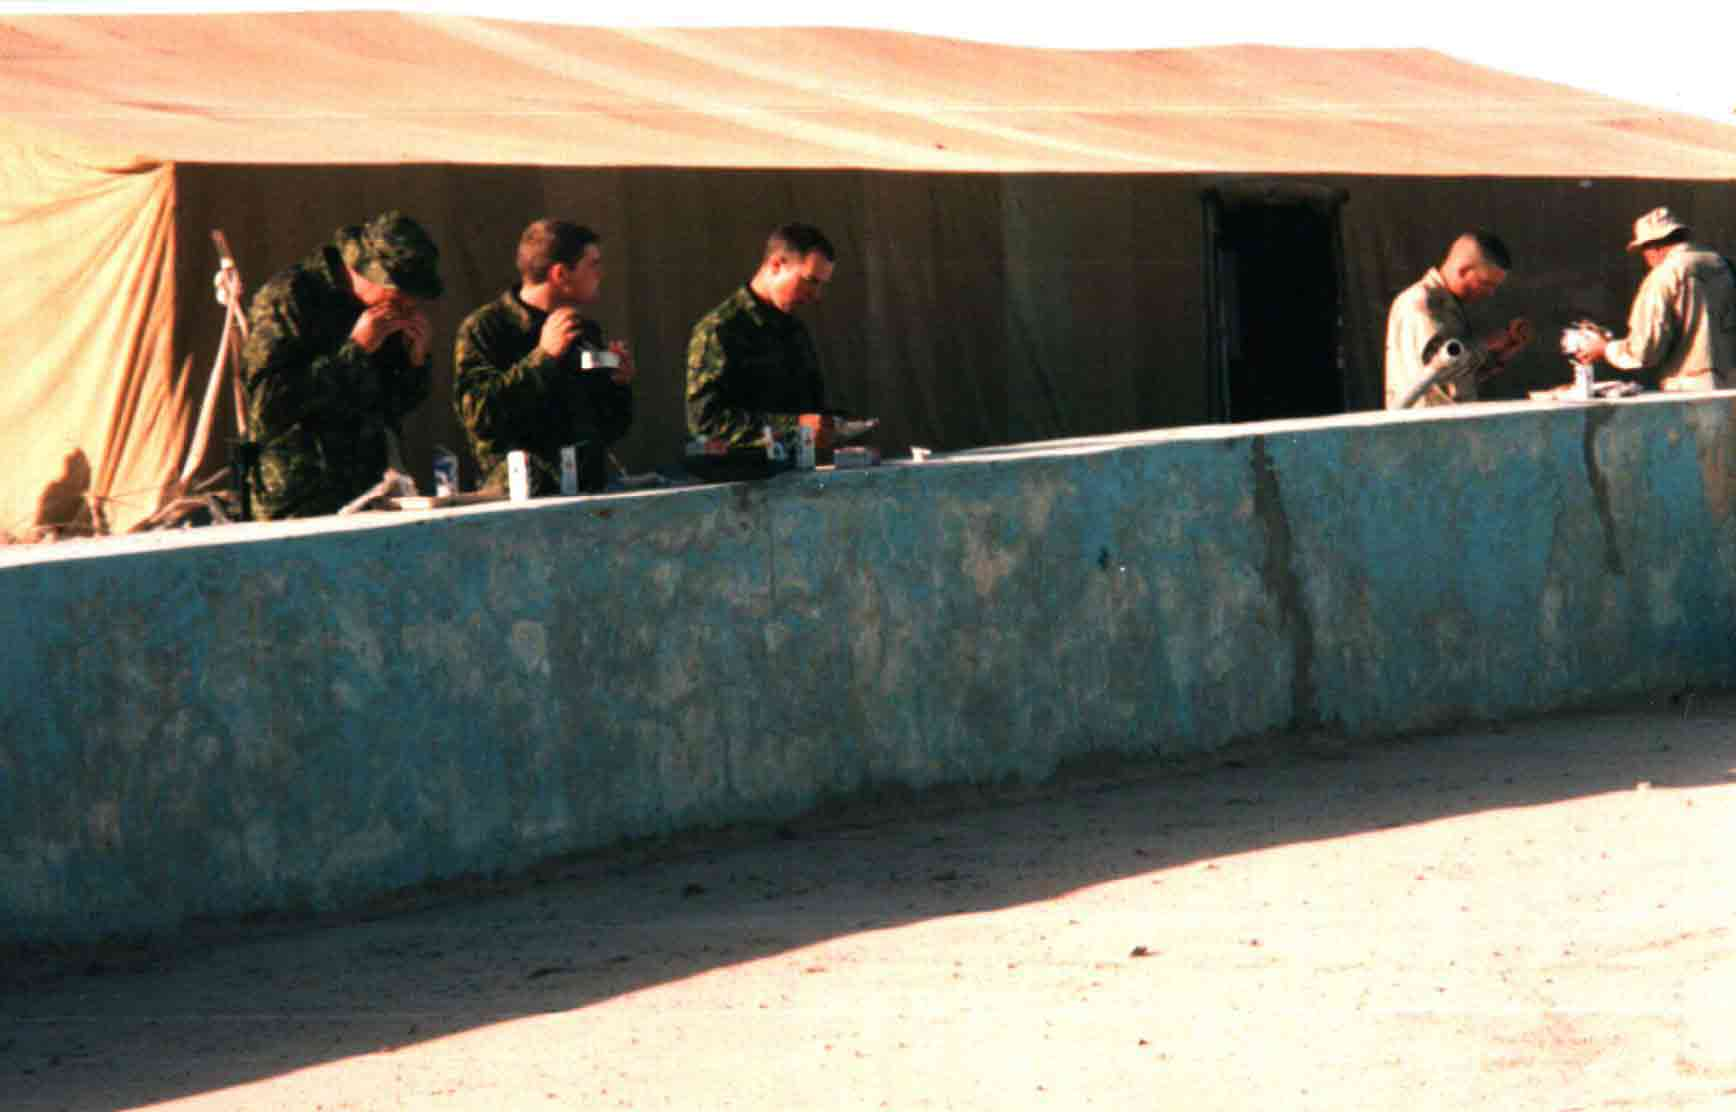 This is one for anyone out there who is familiar with the Boardwalk at Kandahar Air Field. It shows the dining facilities at the base in early 2002. The tent covers a bare concrete pad. No tables and chairs for the fine diners of Task Force Rakkasan.